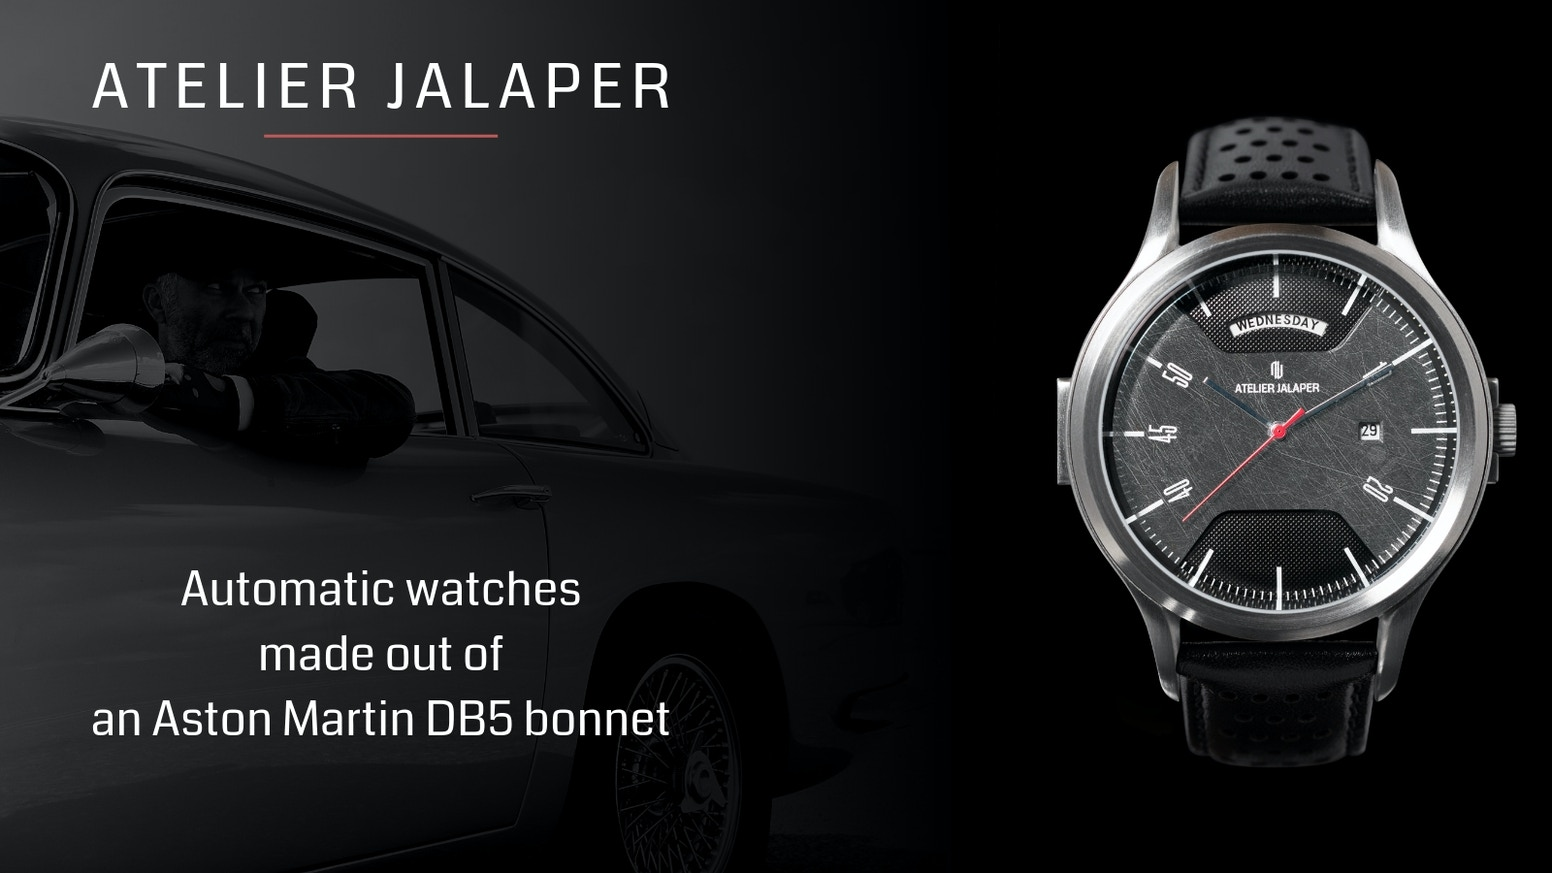 An automatic watch made out of authentic Aston Martin DB5 body parts